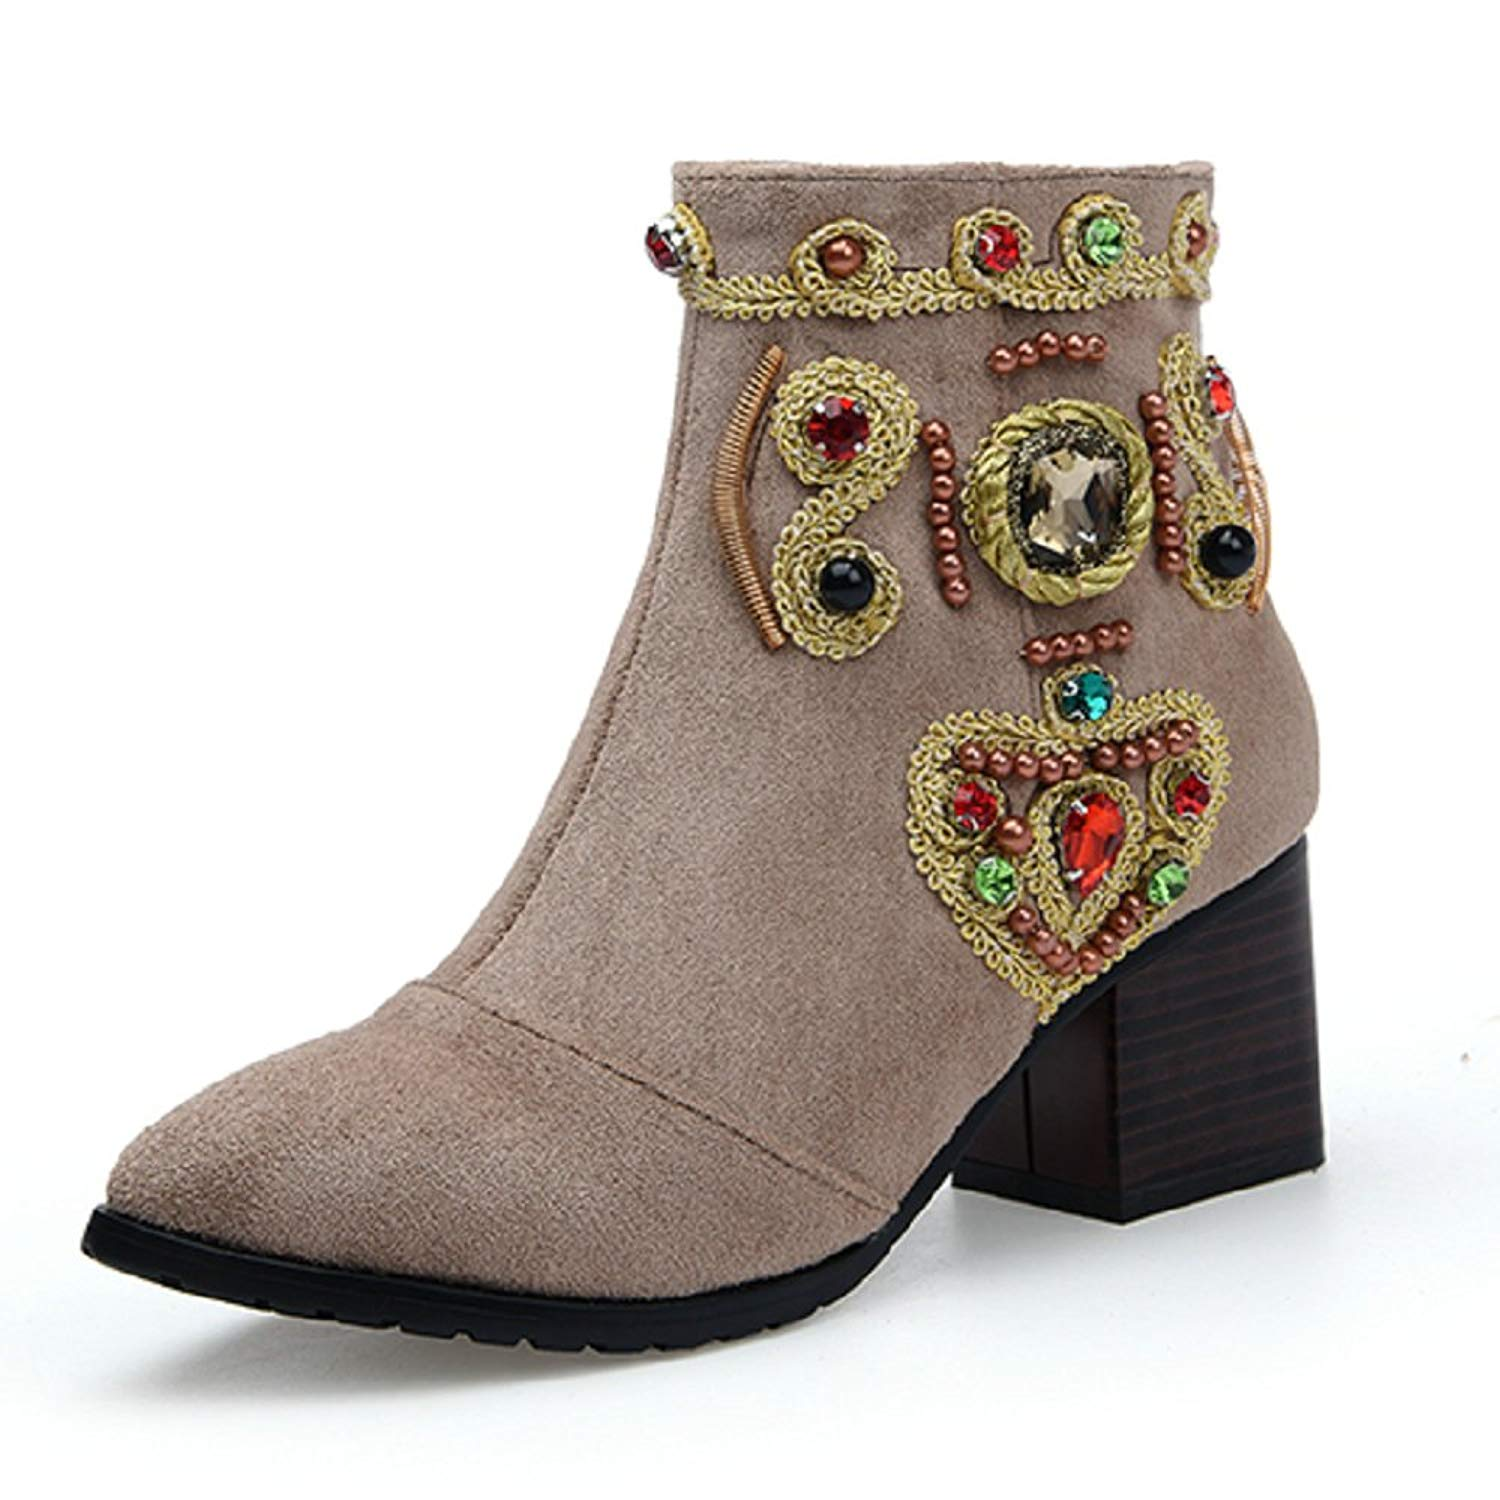 542a80ca4 Get Quotations · AnMengXinLing Women Ankle Booties Suede Pointed Toe Mid  Chunky Heel Rhinestone Wedding